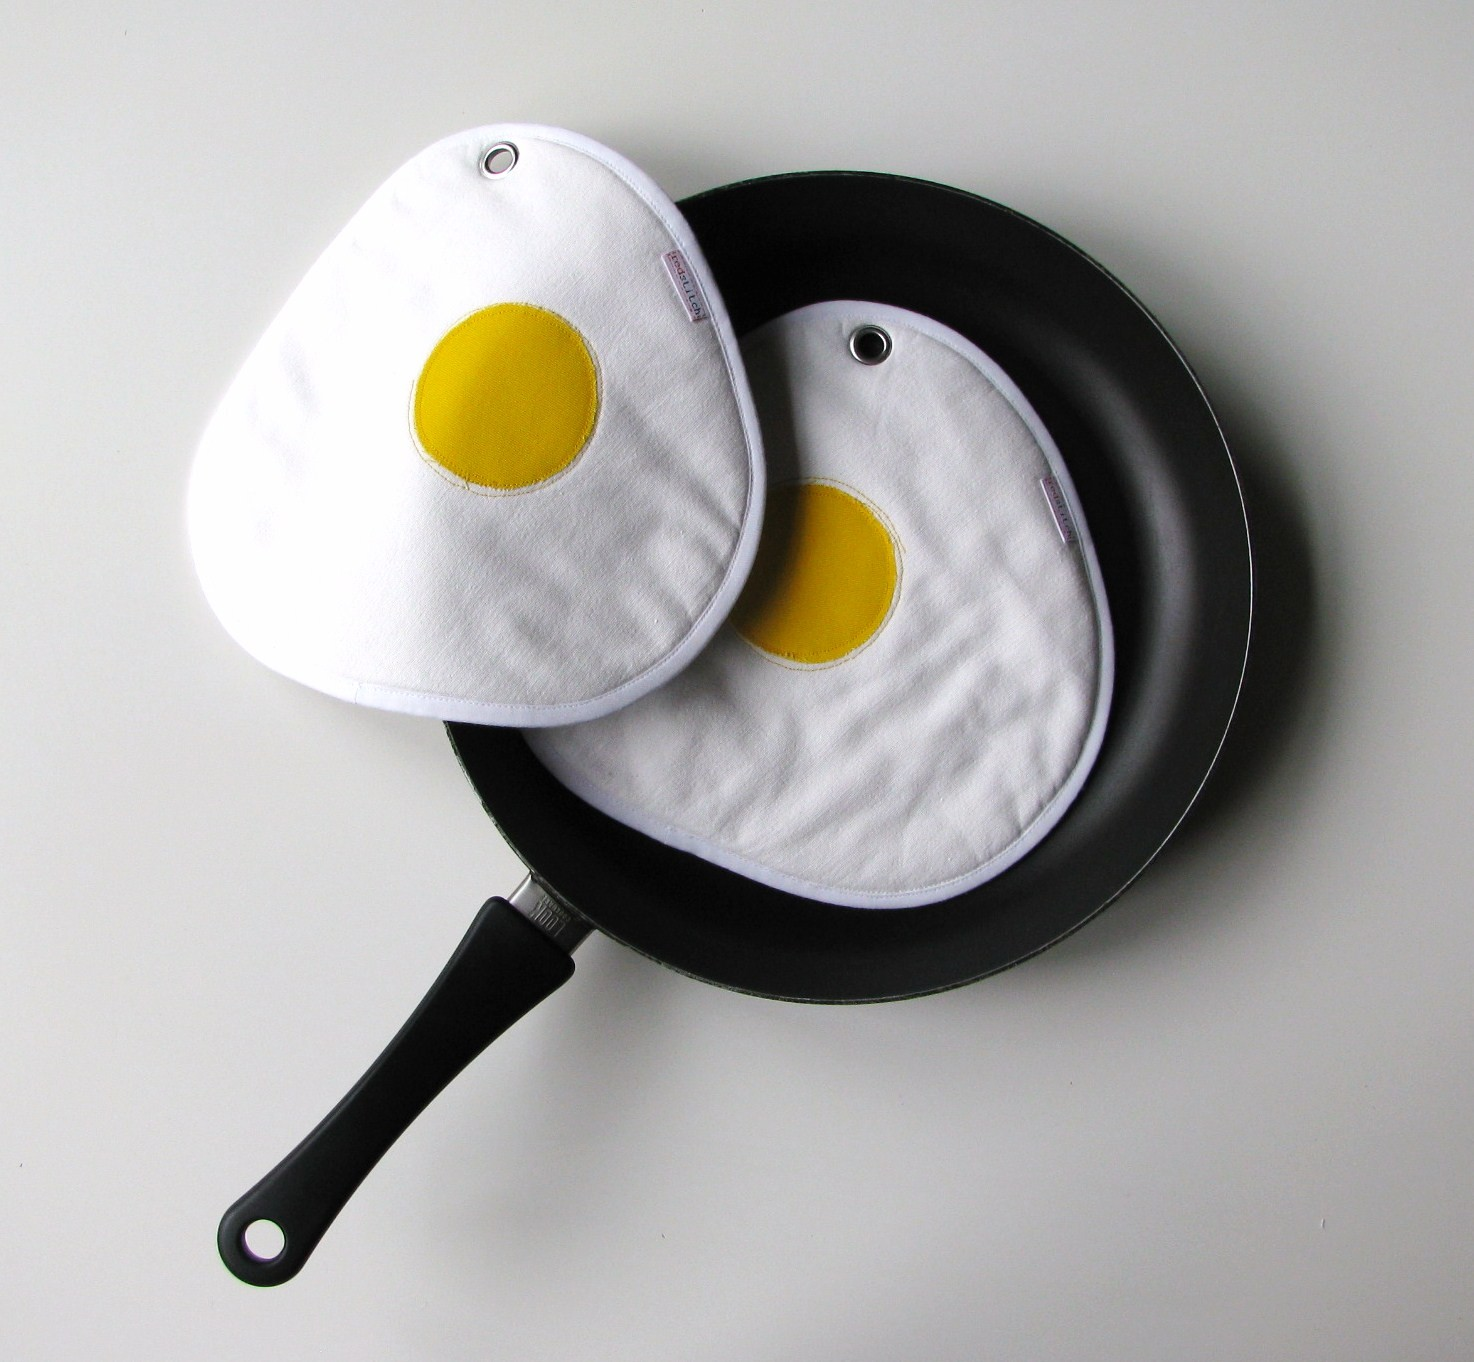 dailybasics_kitchen_08_eggpotholders